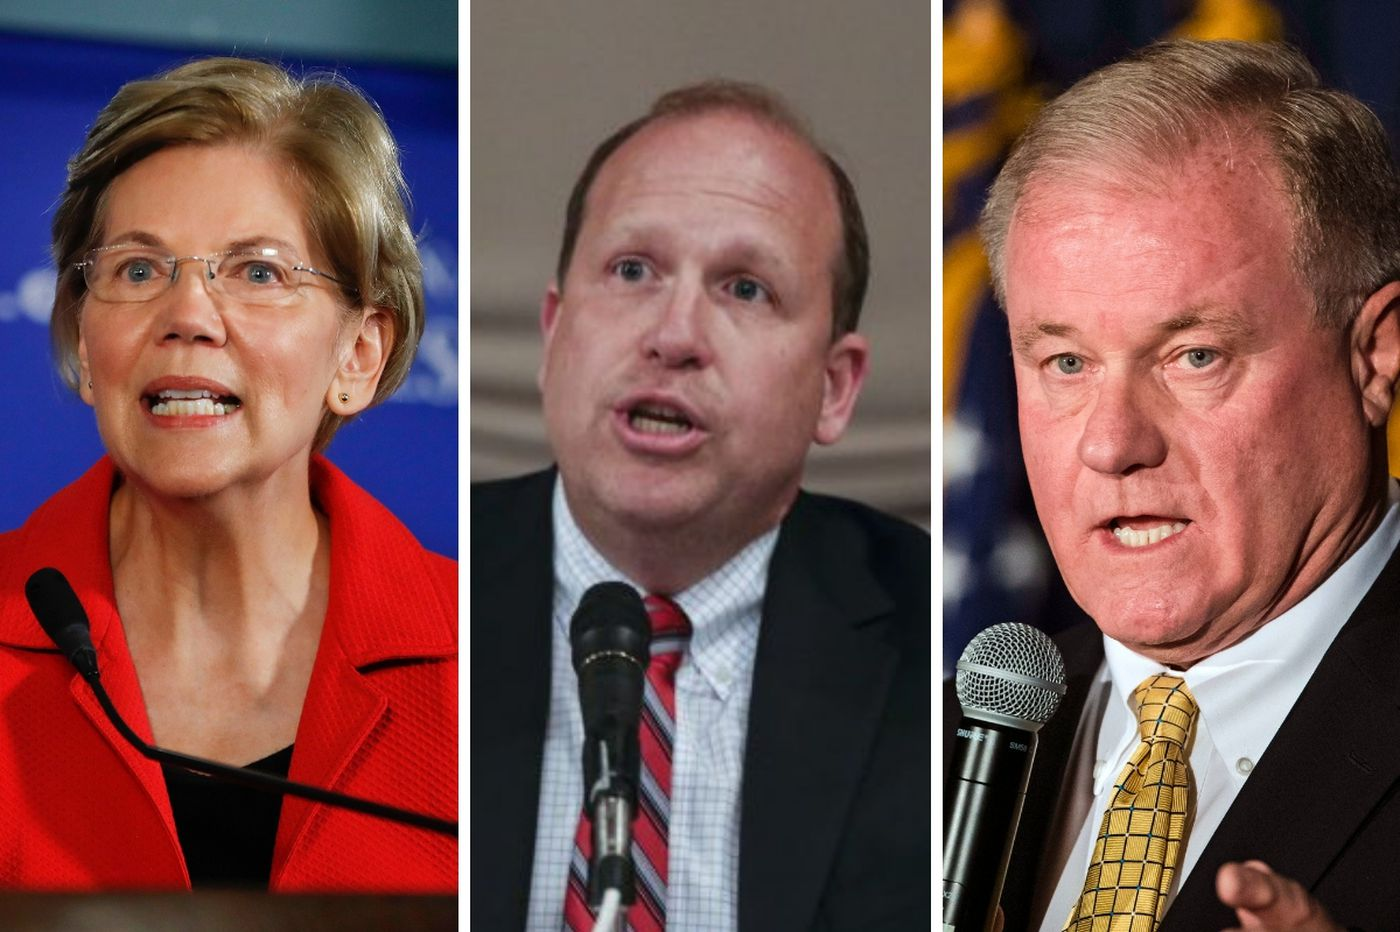 Politicians behaving badly: Separating the signal from the noise | Ronnie Polaneczky